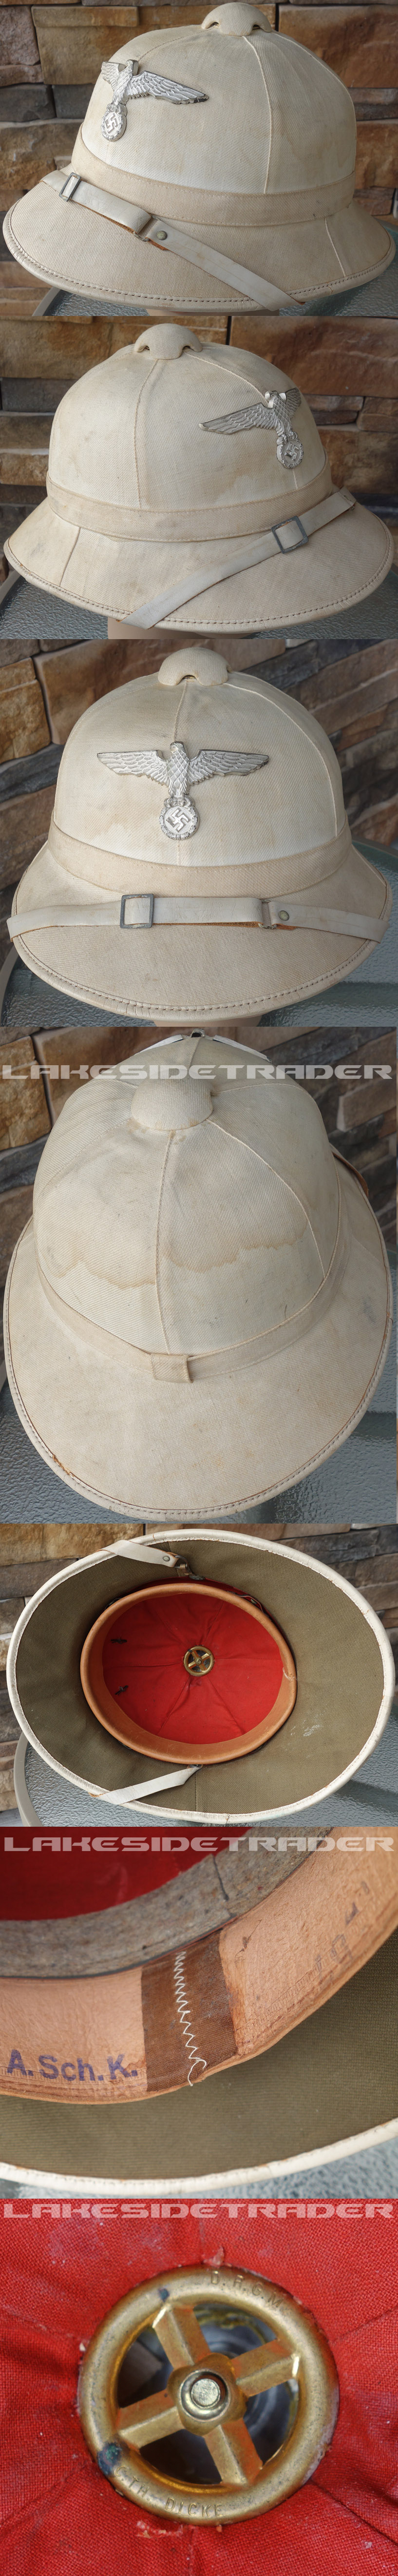 Navy Administration Official's Pith Helmet